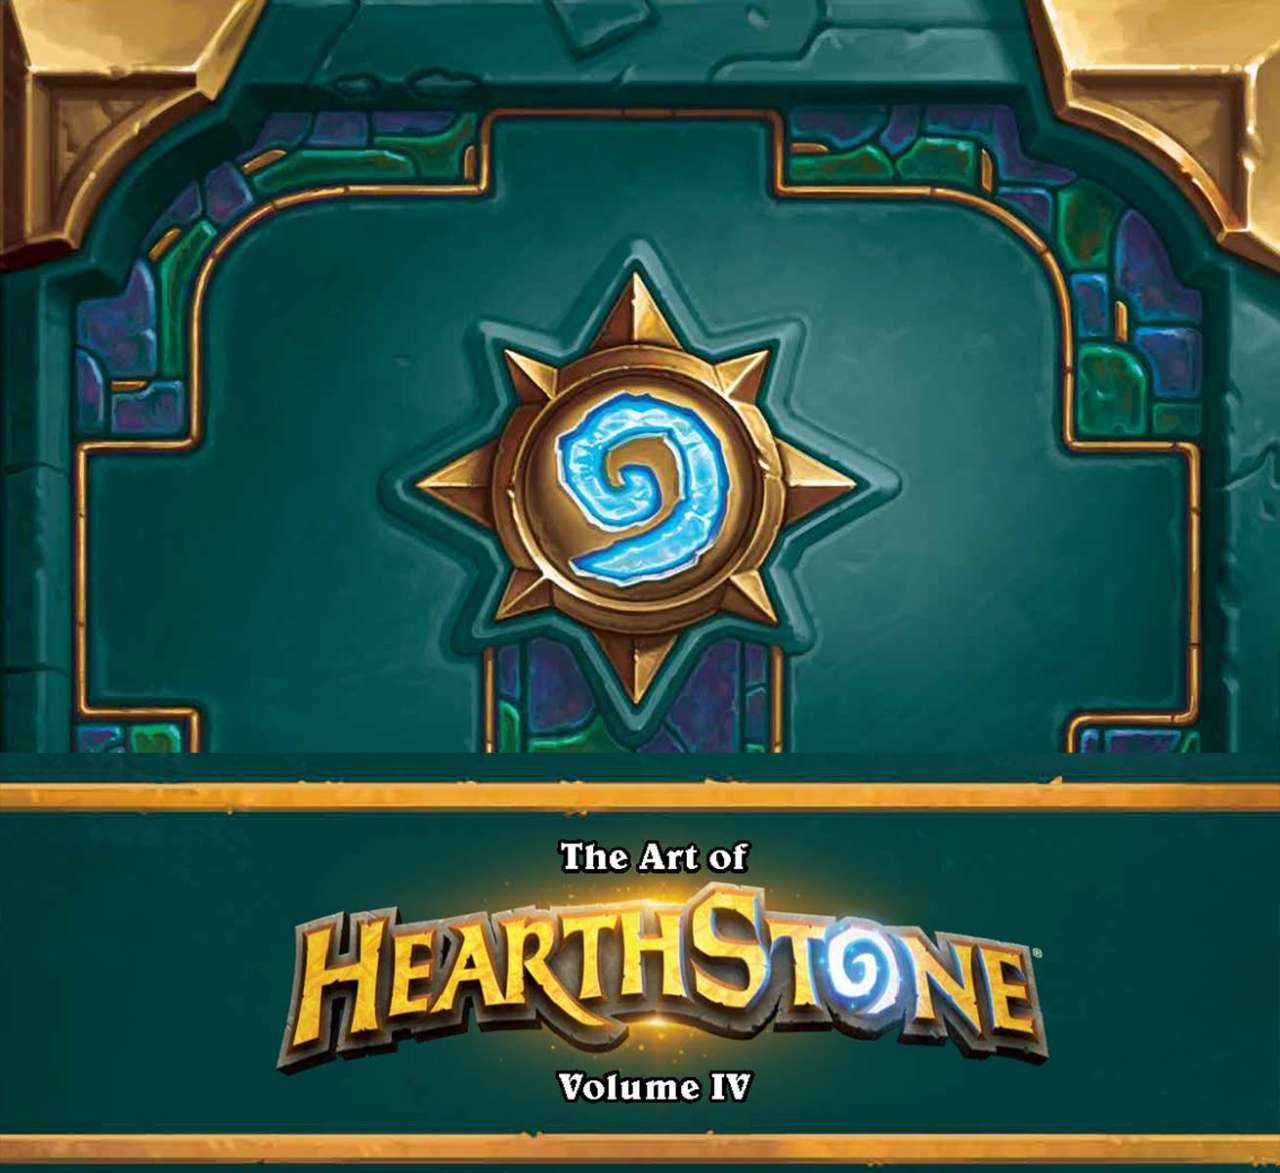 The Art of Hearthstone Volume IV - Year of the Raven